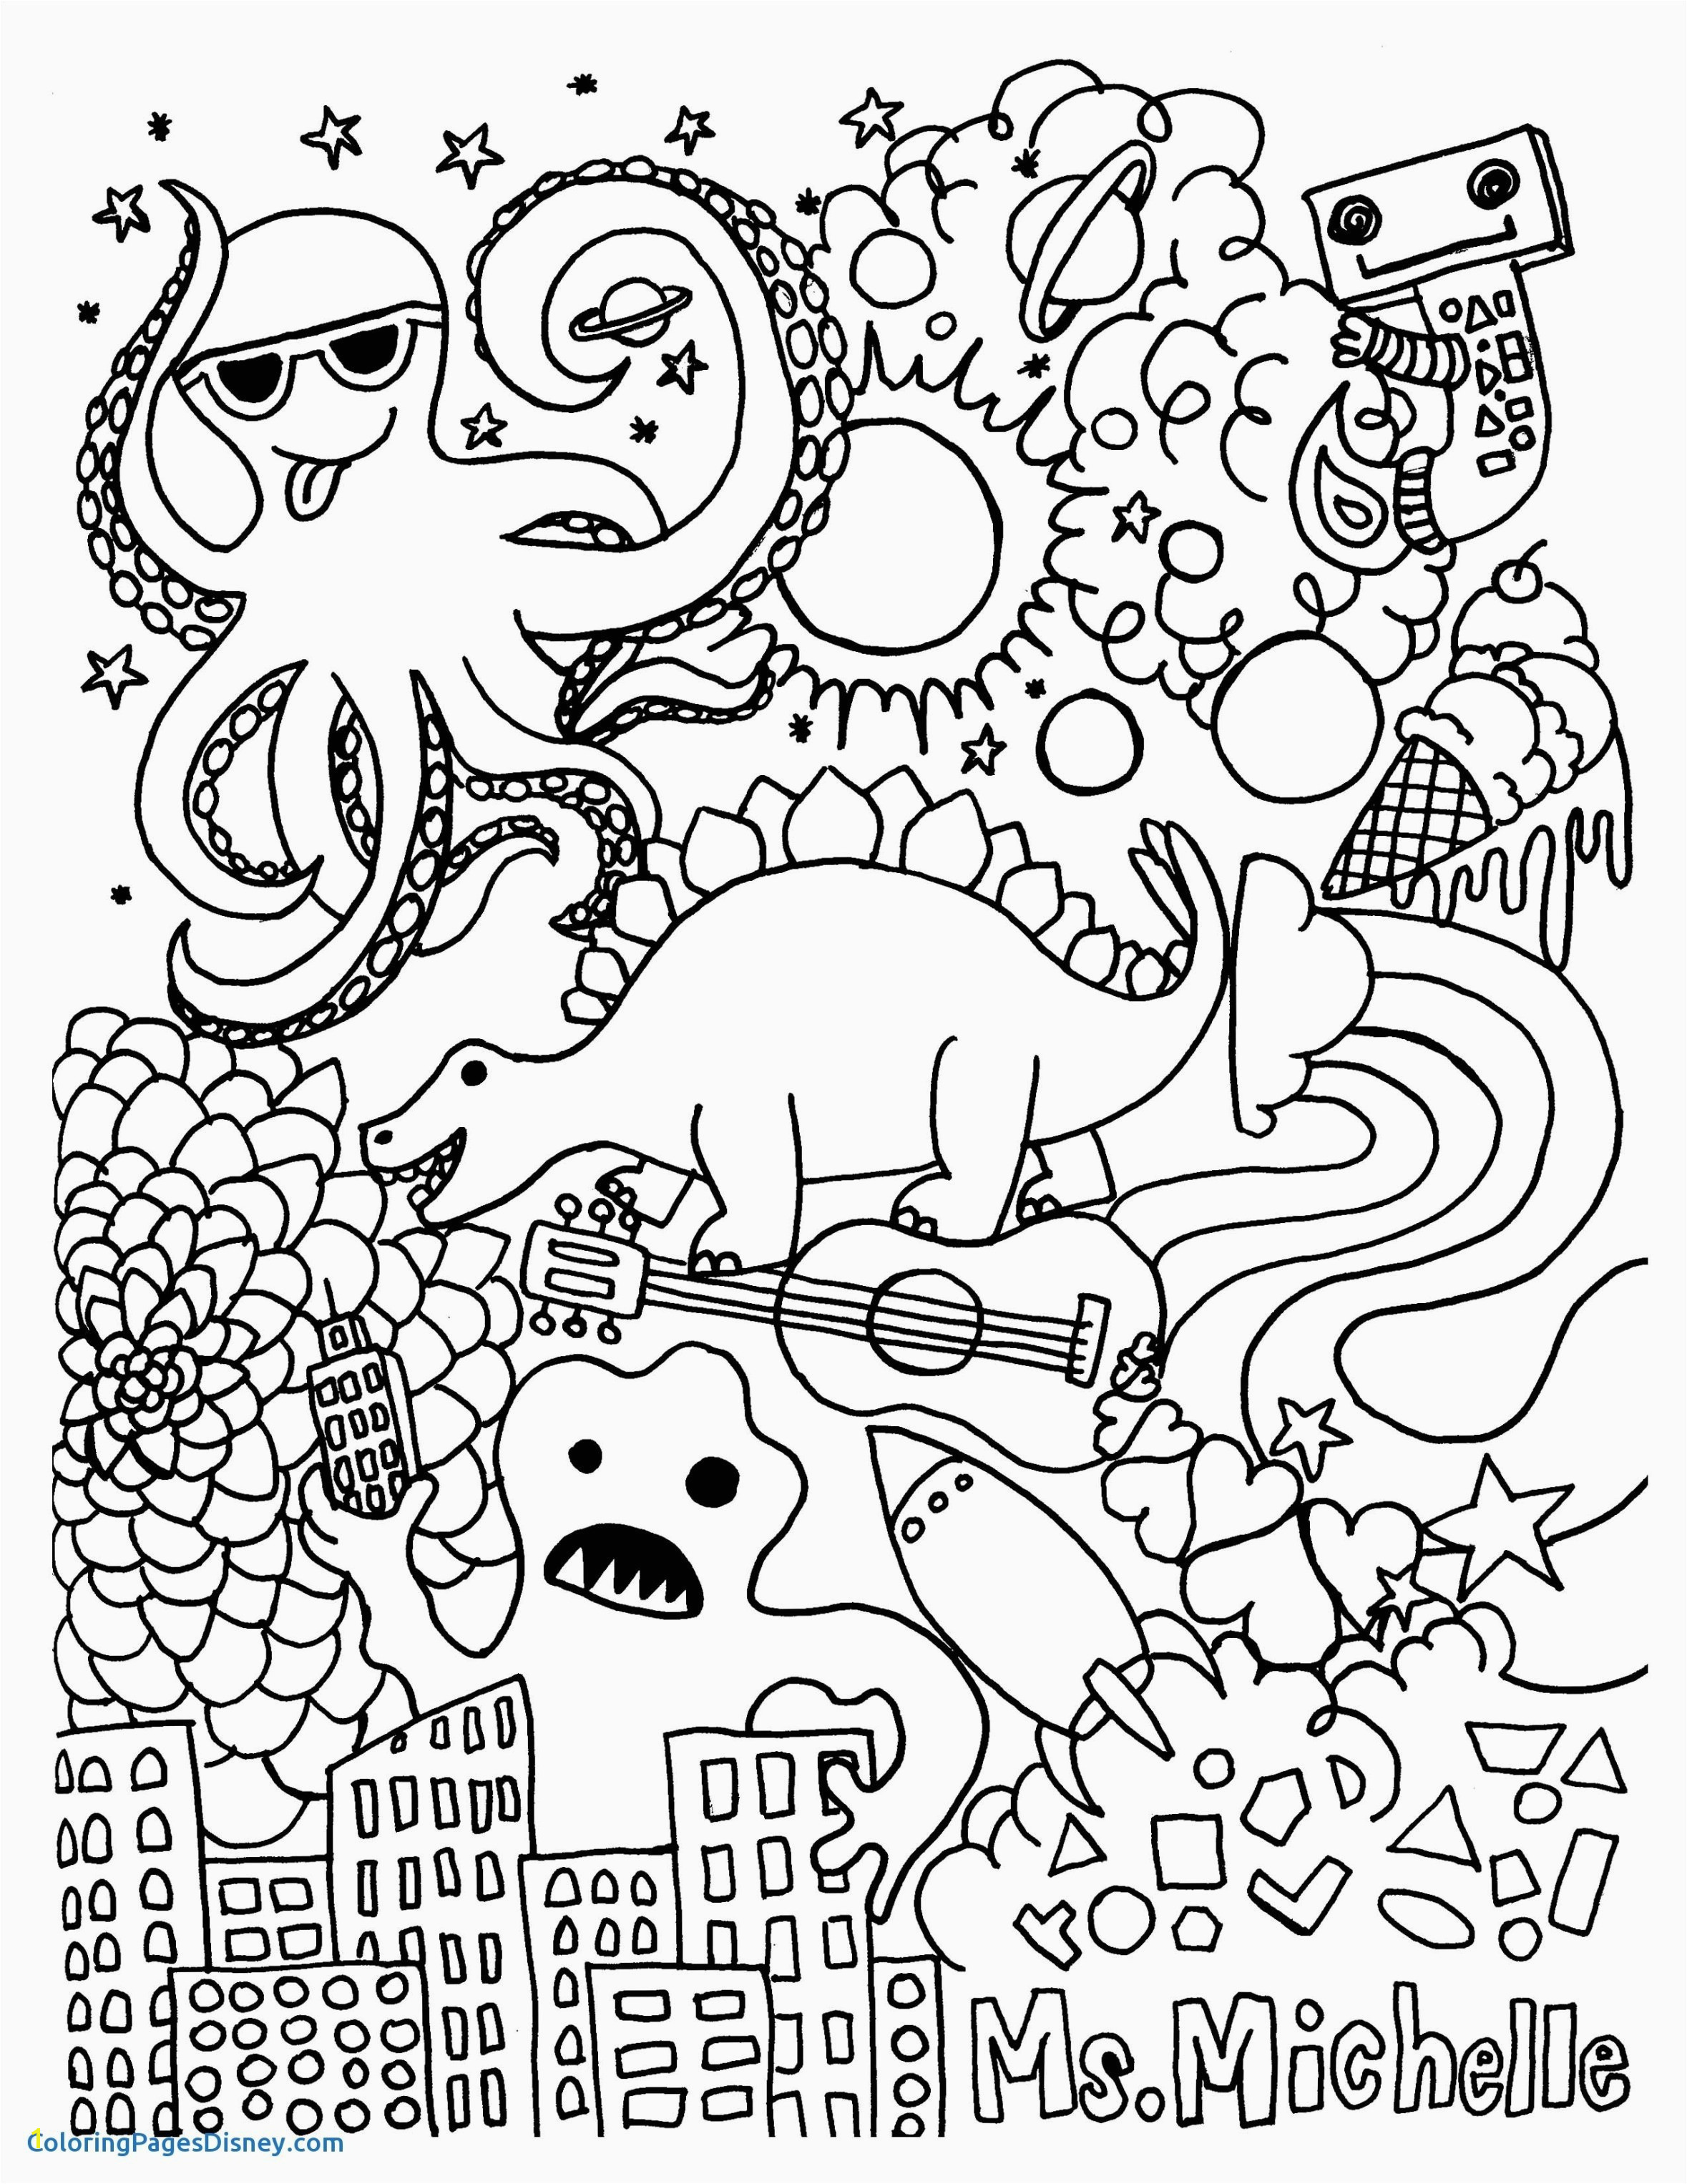 Free Printable Bible Characters Coloring Pages Awesome Free Printable Bible Characters Coloring Pages Awesome Coloring